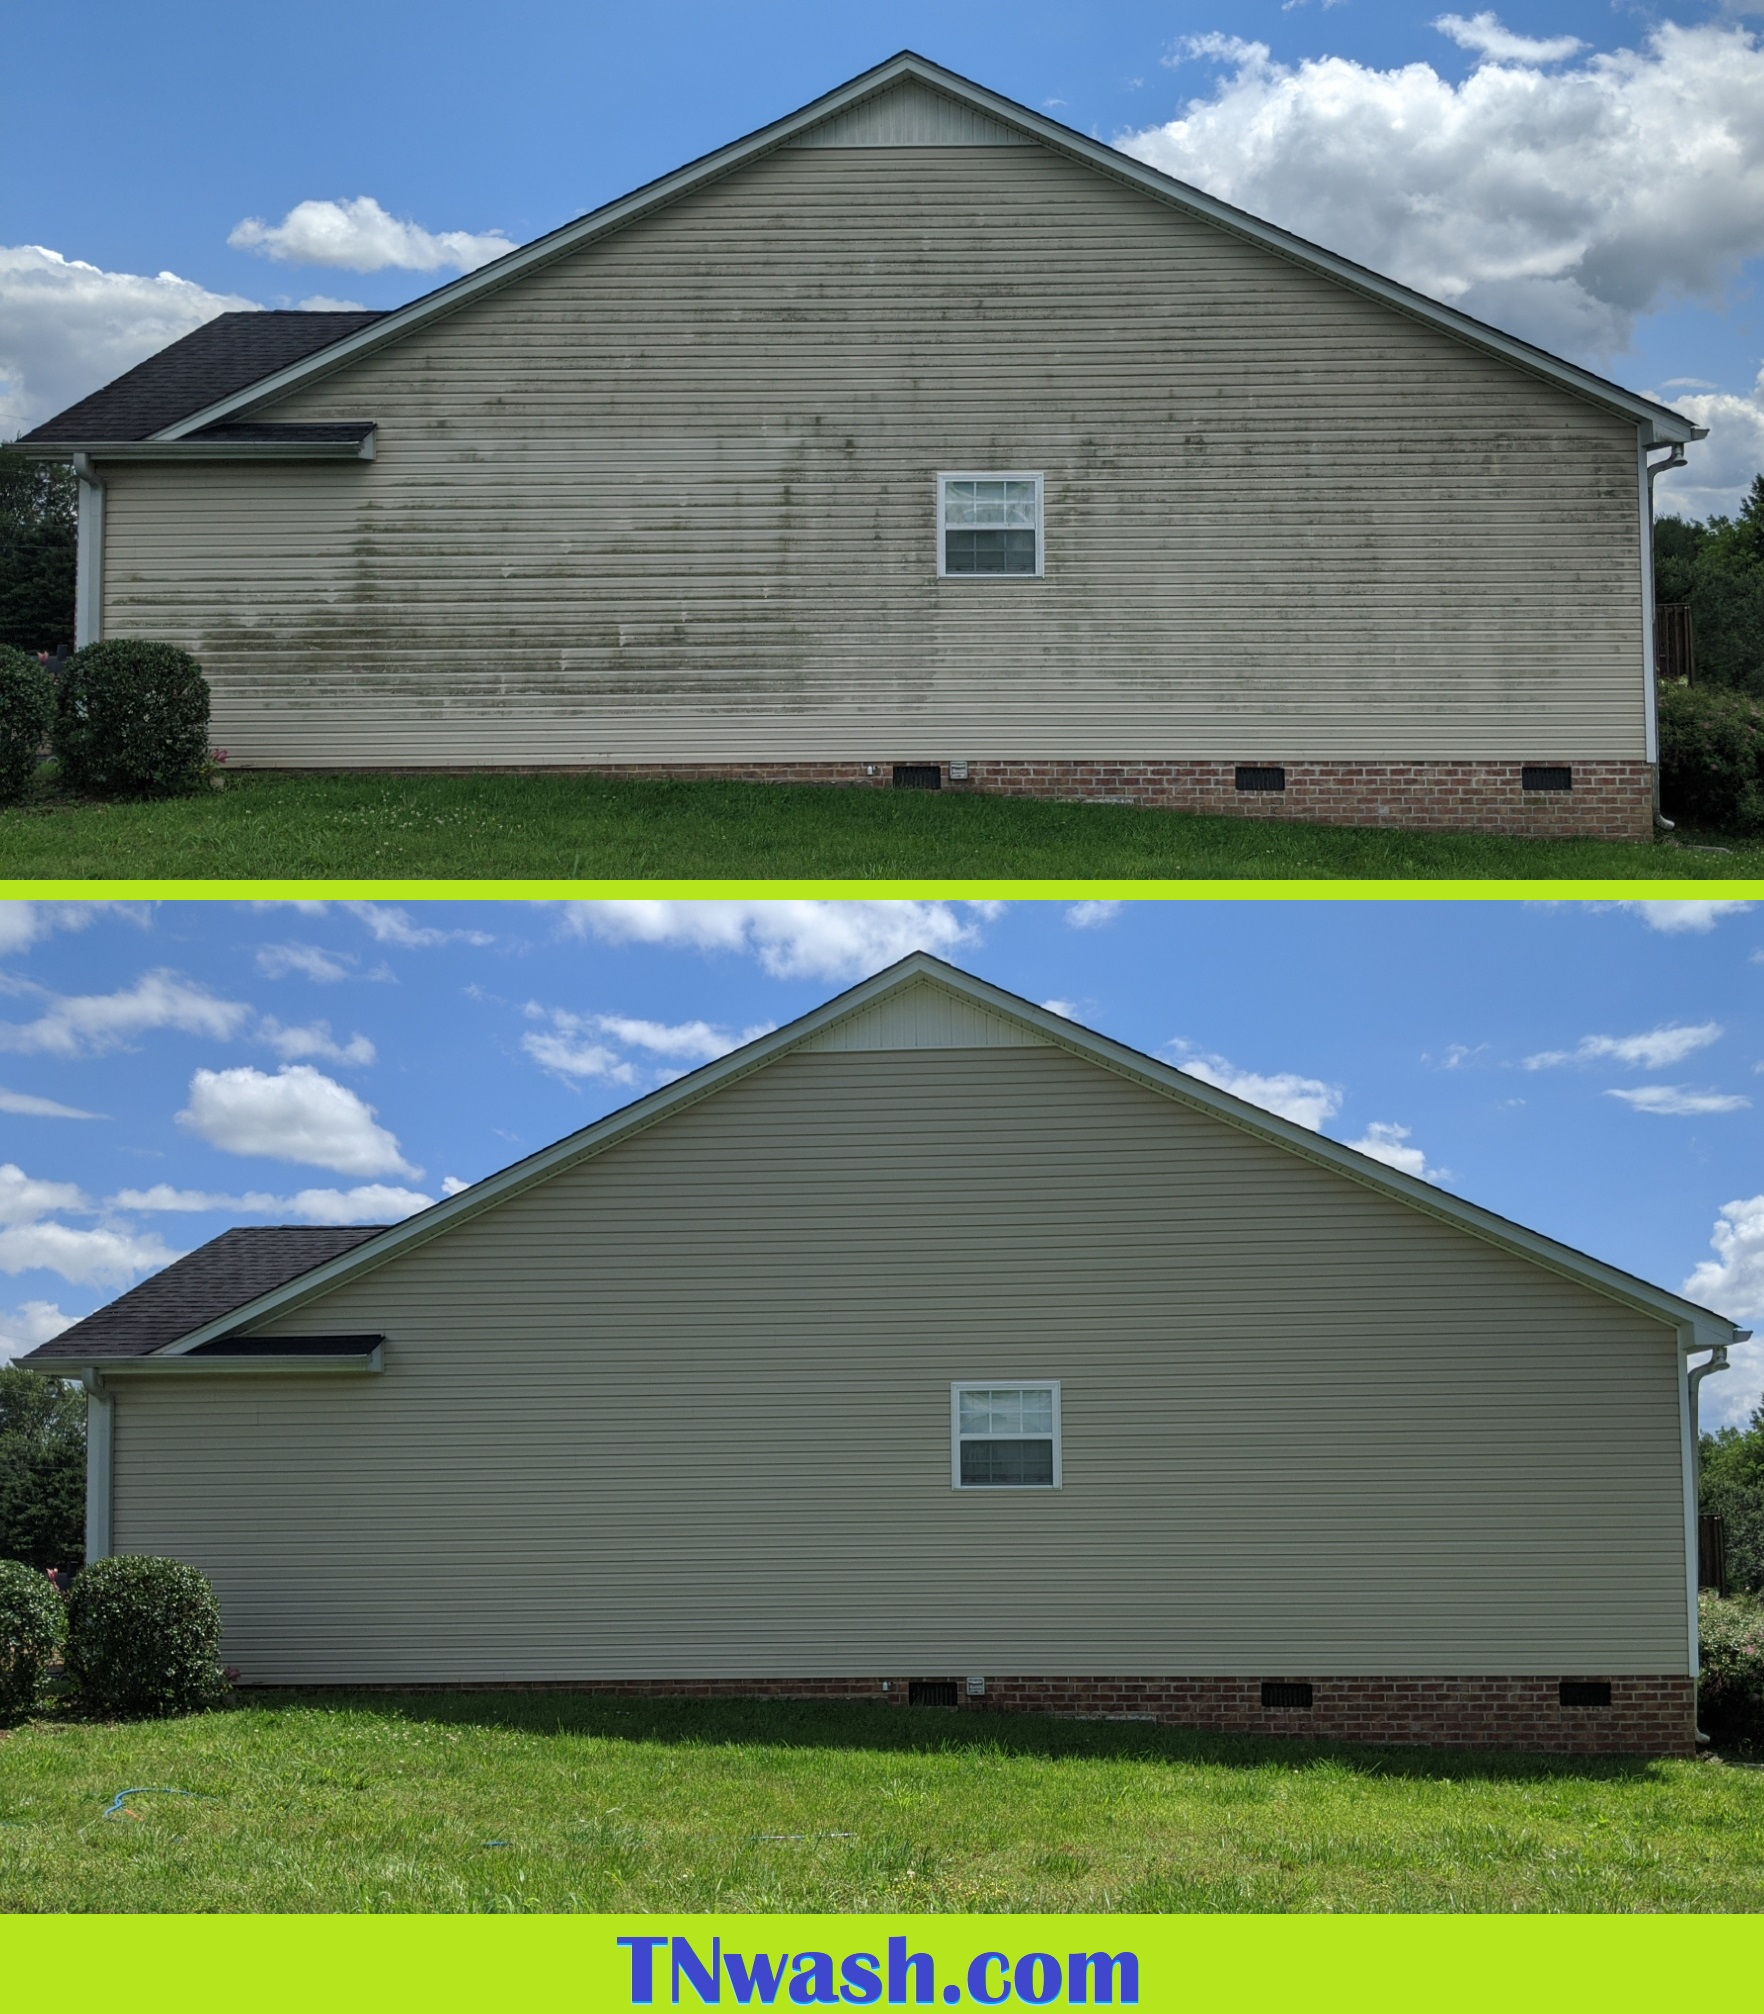 soft washing a house instead of pressure washing